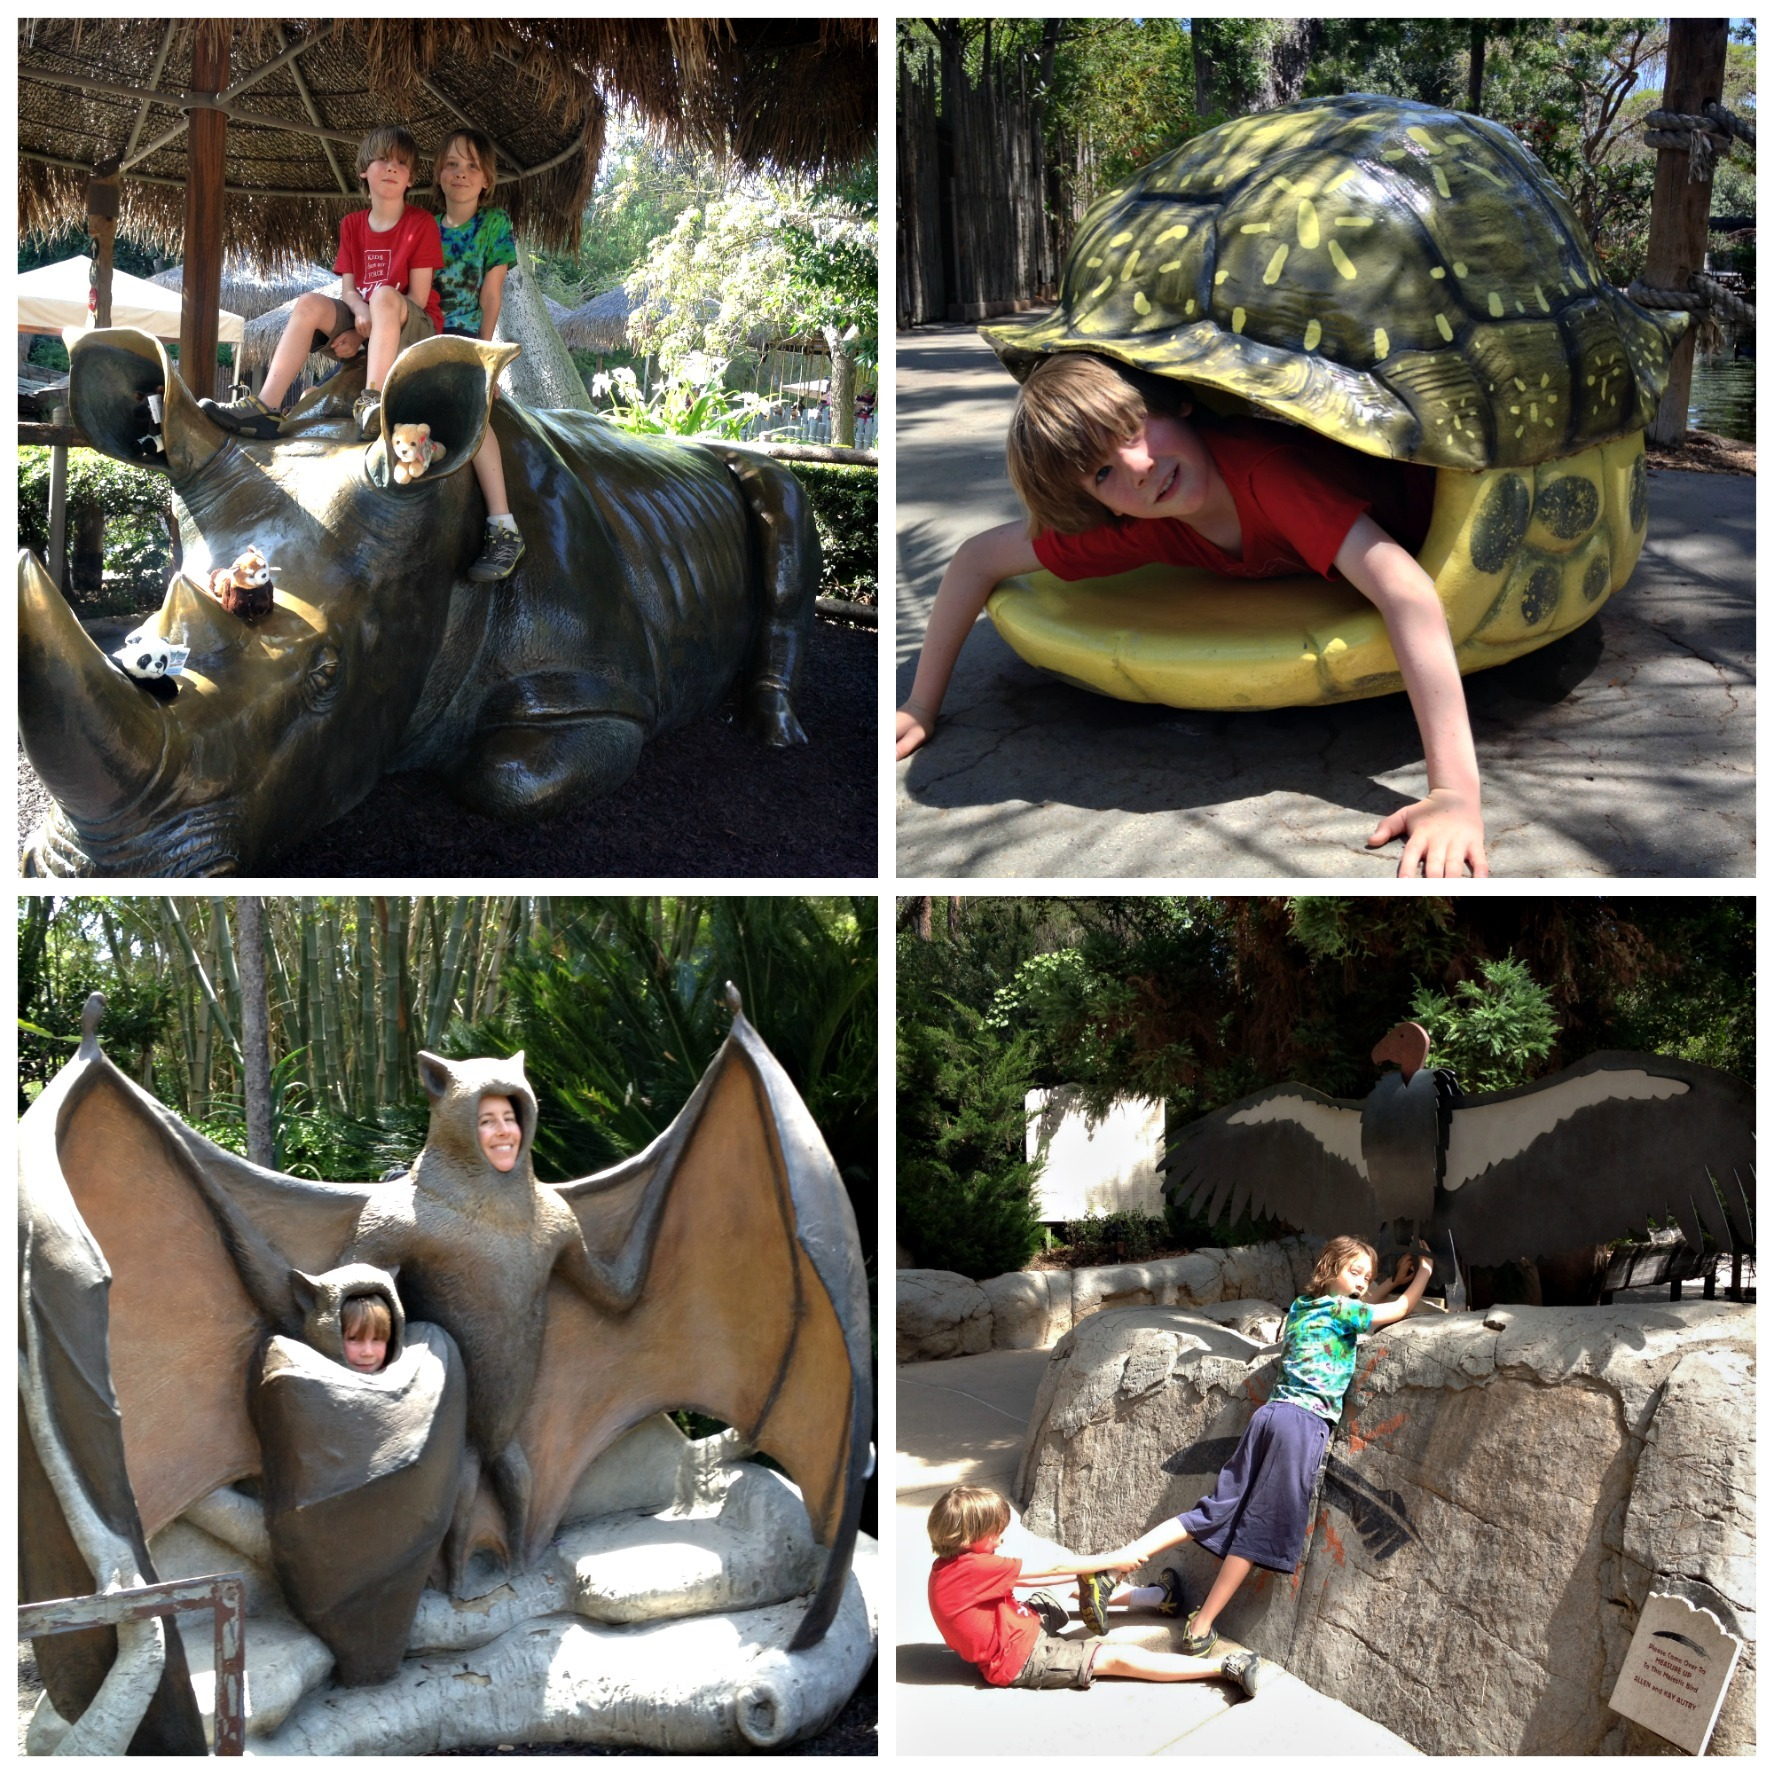 Playing while visiting the Safari Park. Animal statues to climb on.